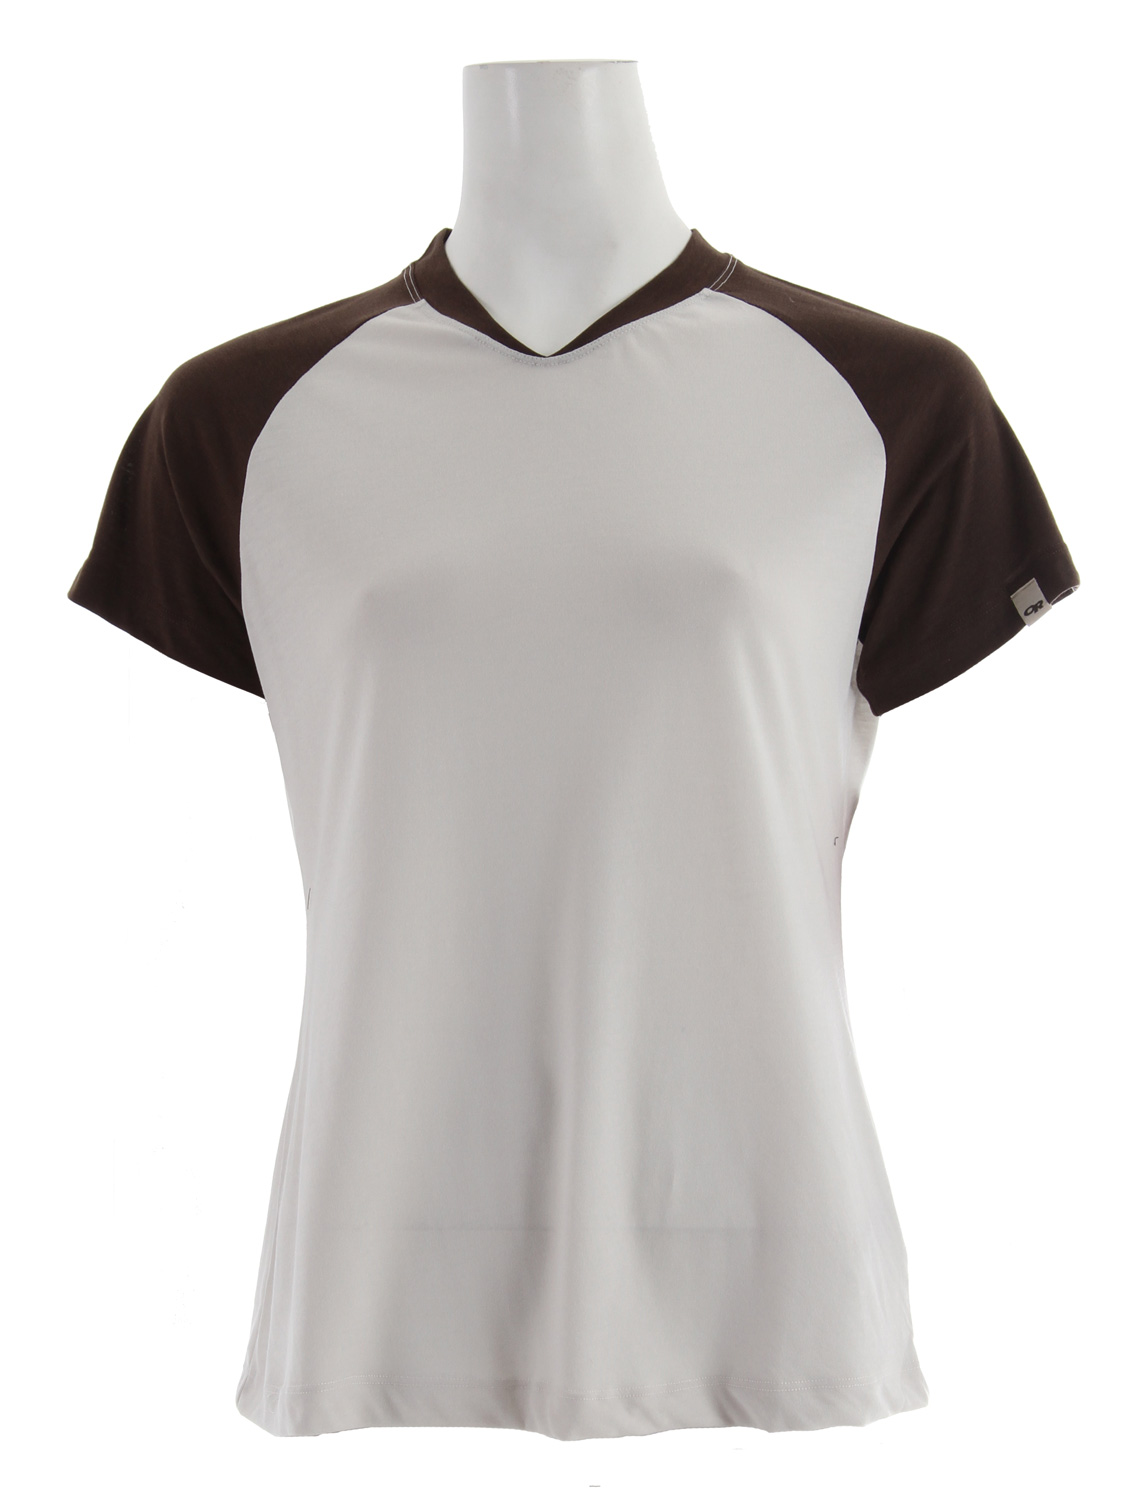 Light, soft, and quick to dry, this tee has the performance of a Merino wool blend and the feel of cotton. The active cut fits more like your favorite T-shirt than a piece of technical wear. The seams are moved away from your shoulders for more comfort when carrying a pack. Key Features of the Outdoor Research Essence Duo T-Shirt: Lightweight Dri-release Wool fabric manages moisture, dries quickly 88% polyester/12% Merino wool for superior wicking and a cotton-like feel Built-in FreshGuard odor neutralization Raglan sleeves Avg. Weight (oz./g): 3.8 / 108(size medium) - $21.95